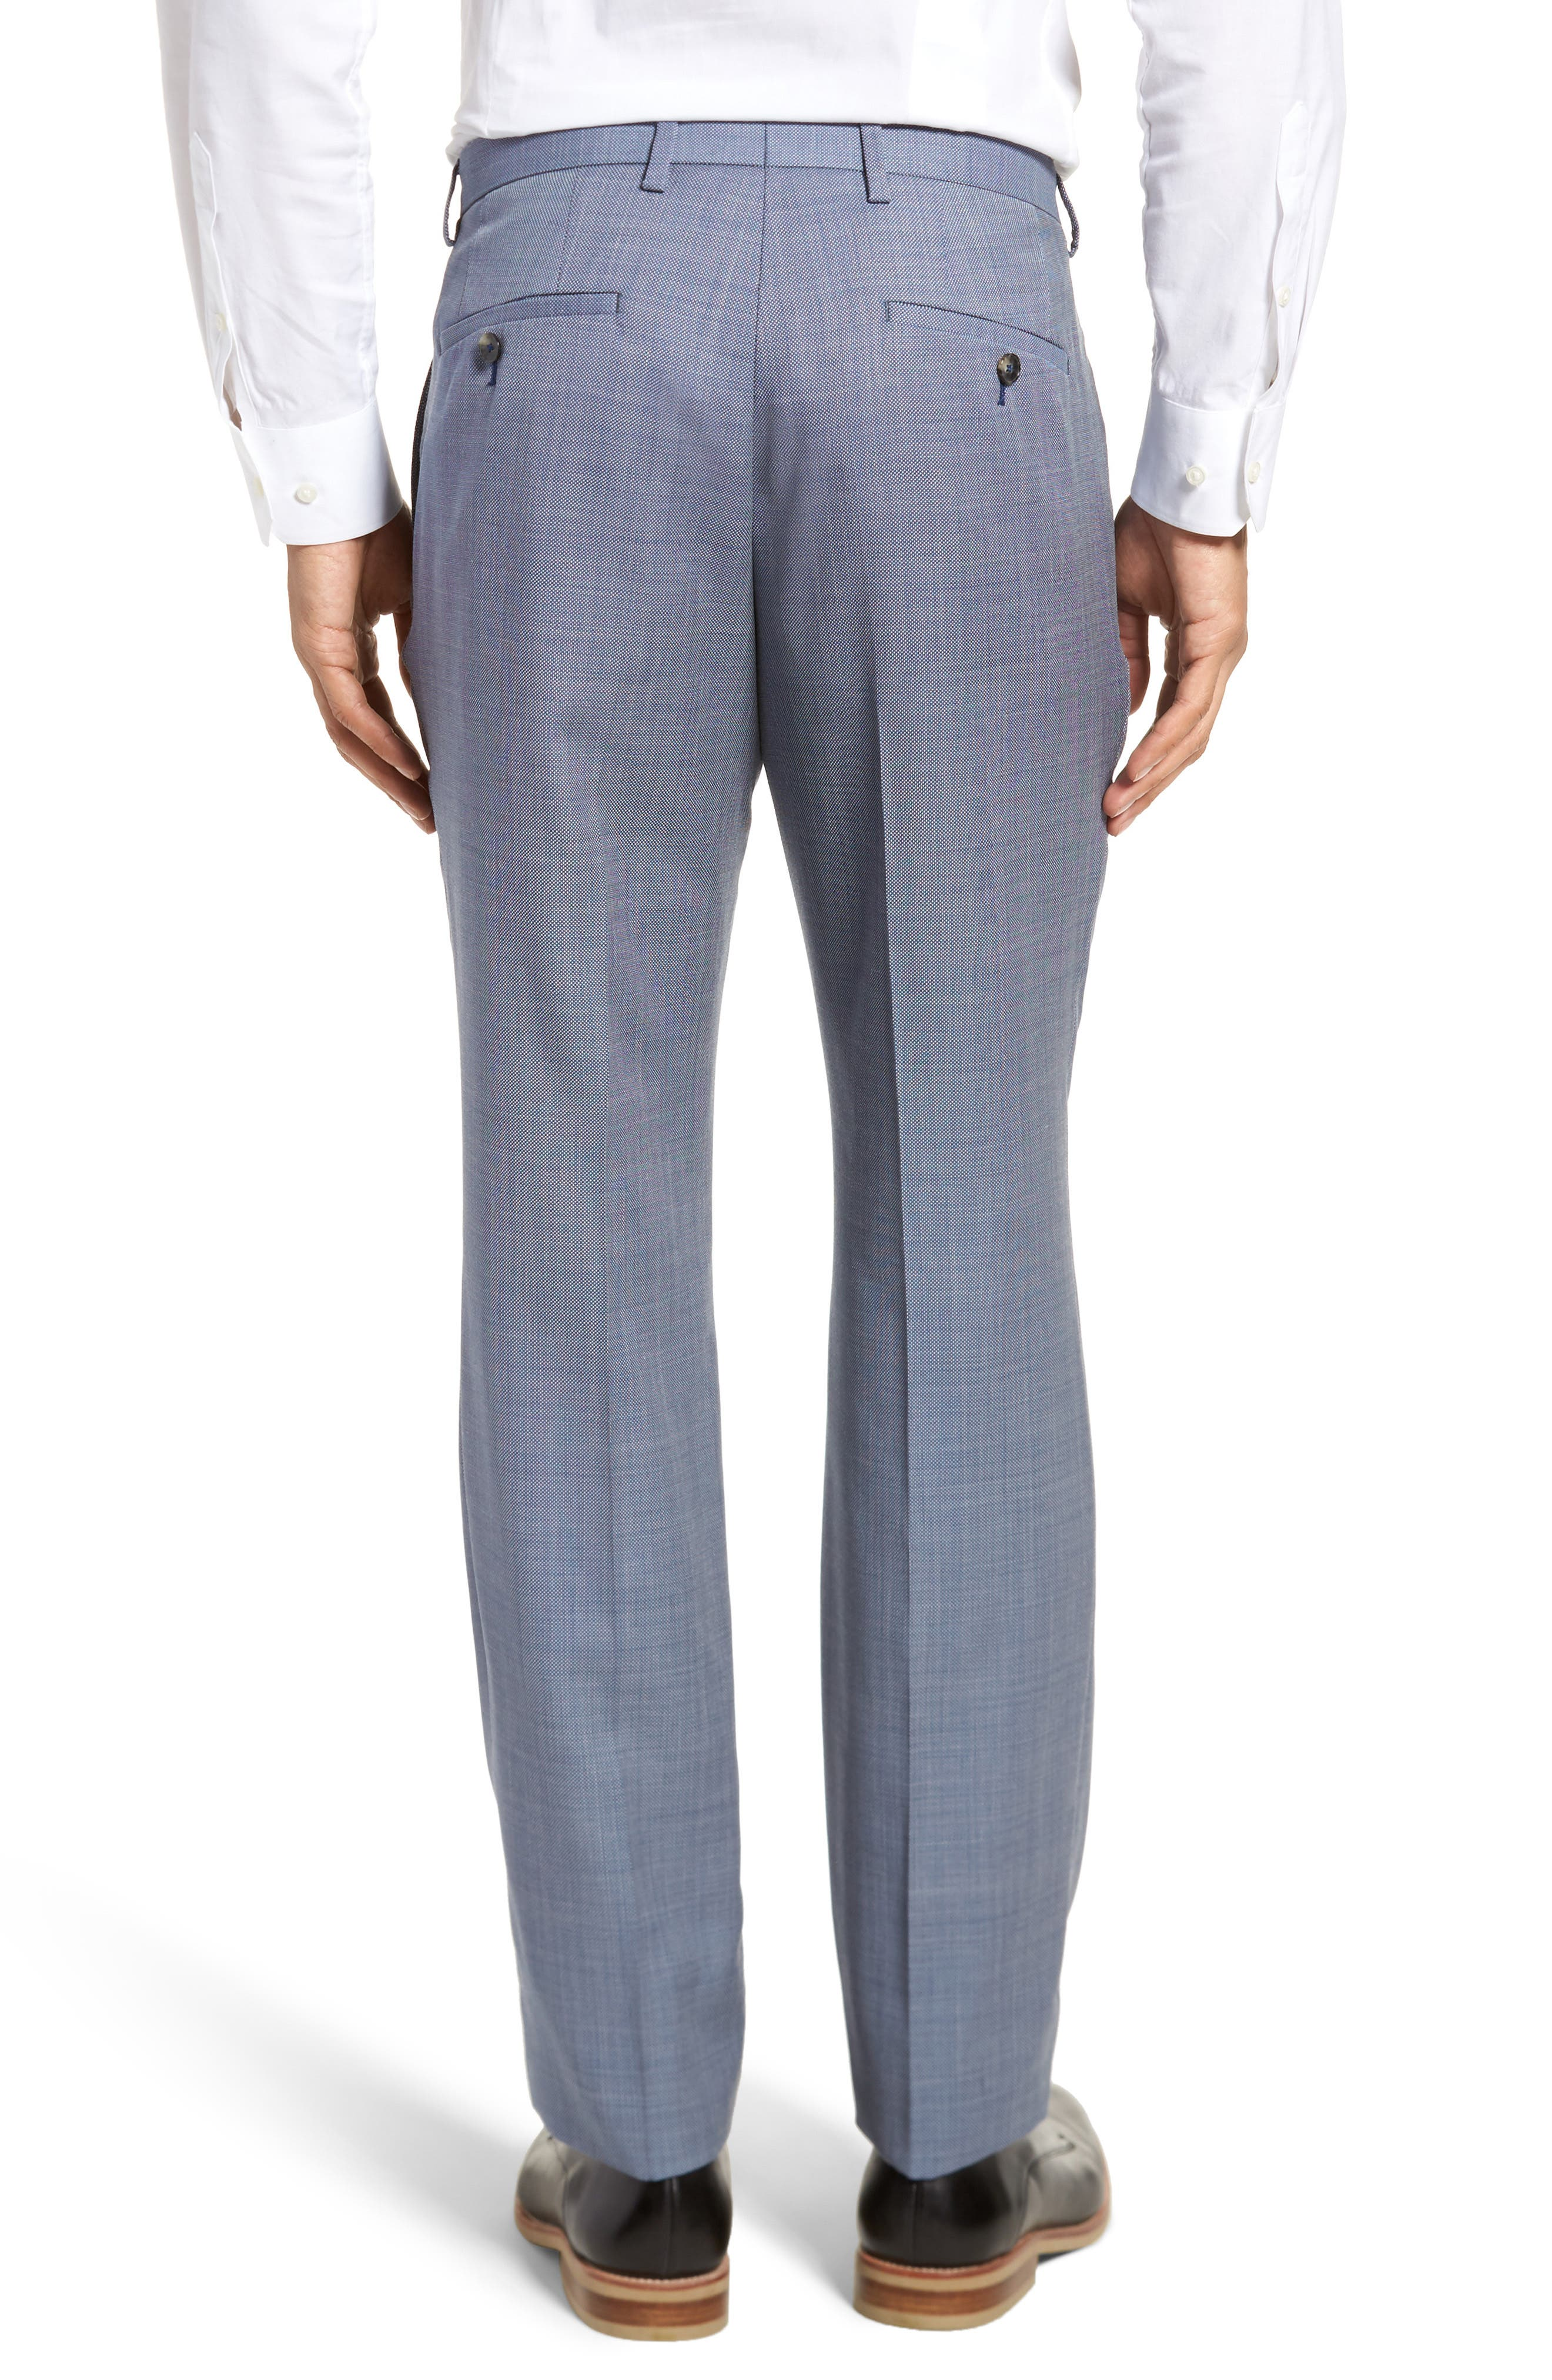 Leenon Flat Front Regular Fit Solid Wool Trousers,                             Alternate thumbnail 3, color,                             Light/ Pastel Blue